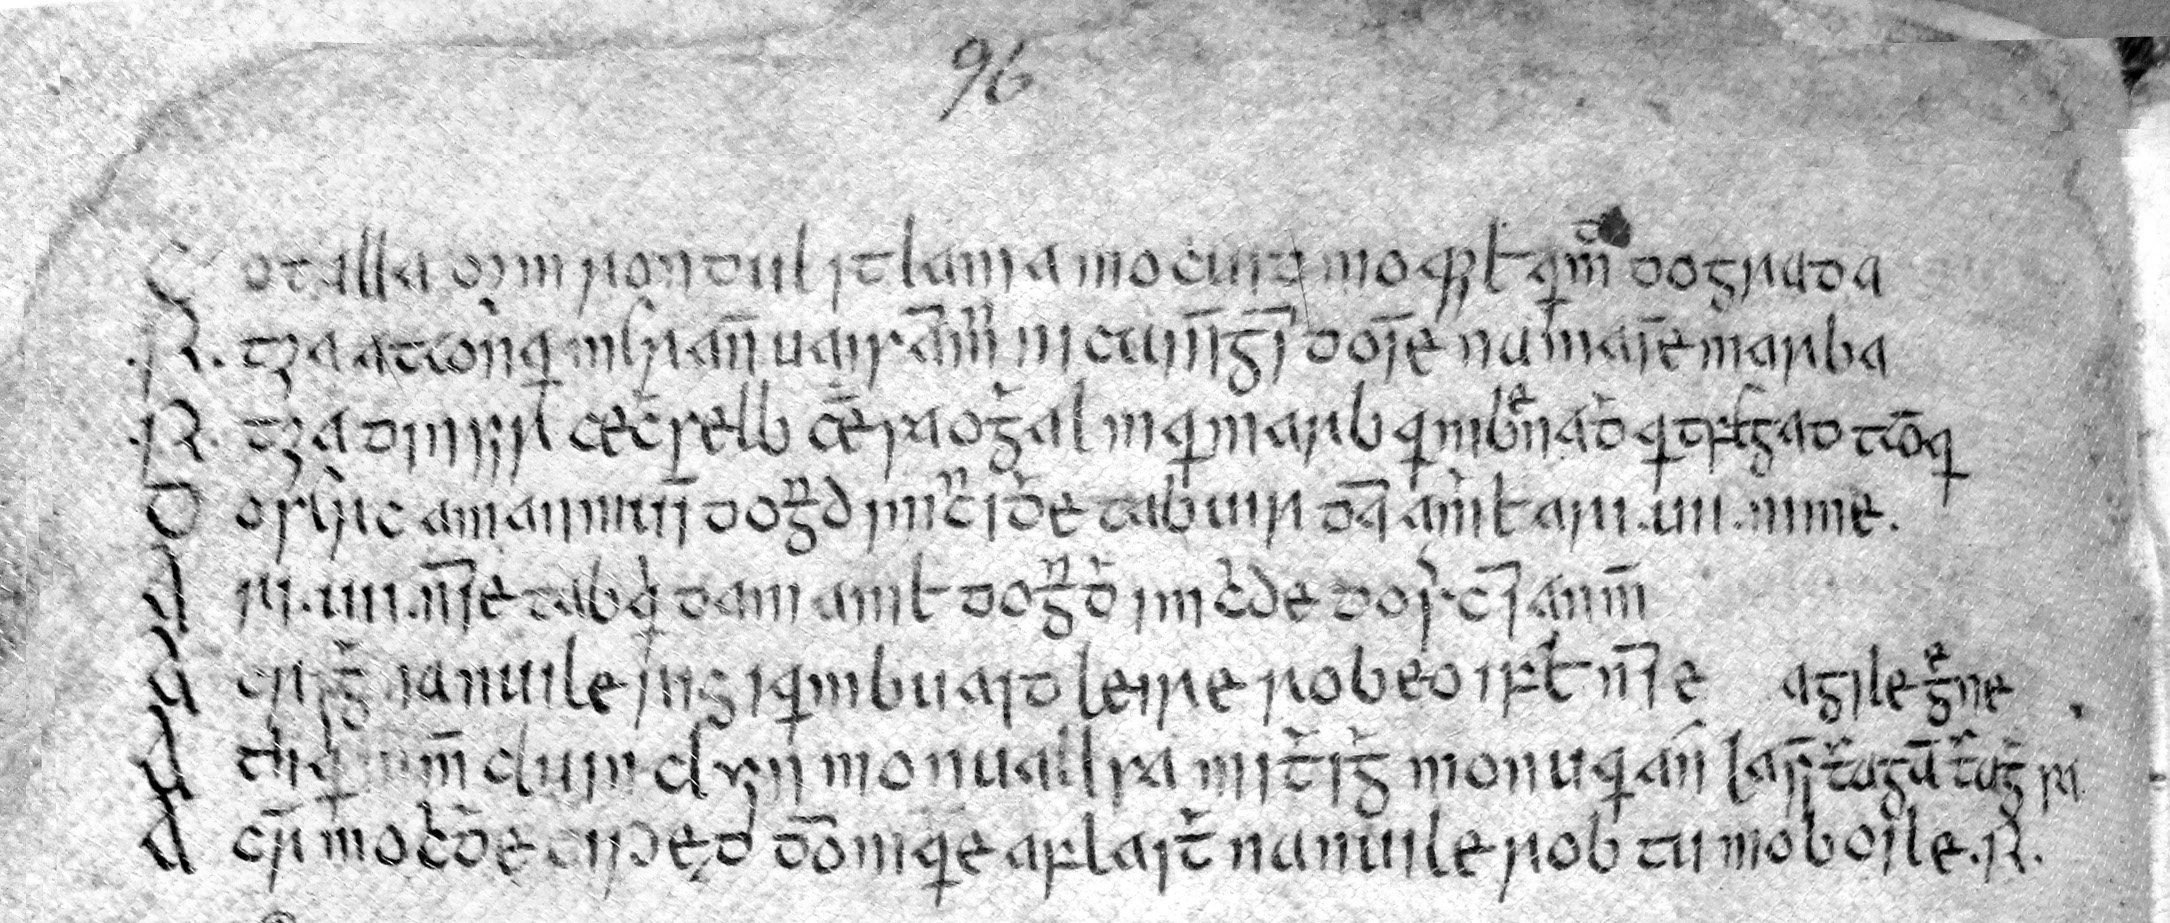 Fig. 1.  Royal Irish Academy 23 N 10 (16th century), pp. 95-96.